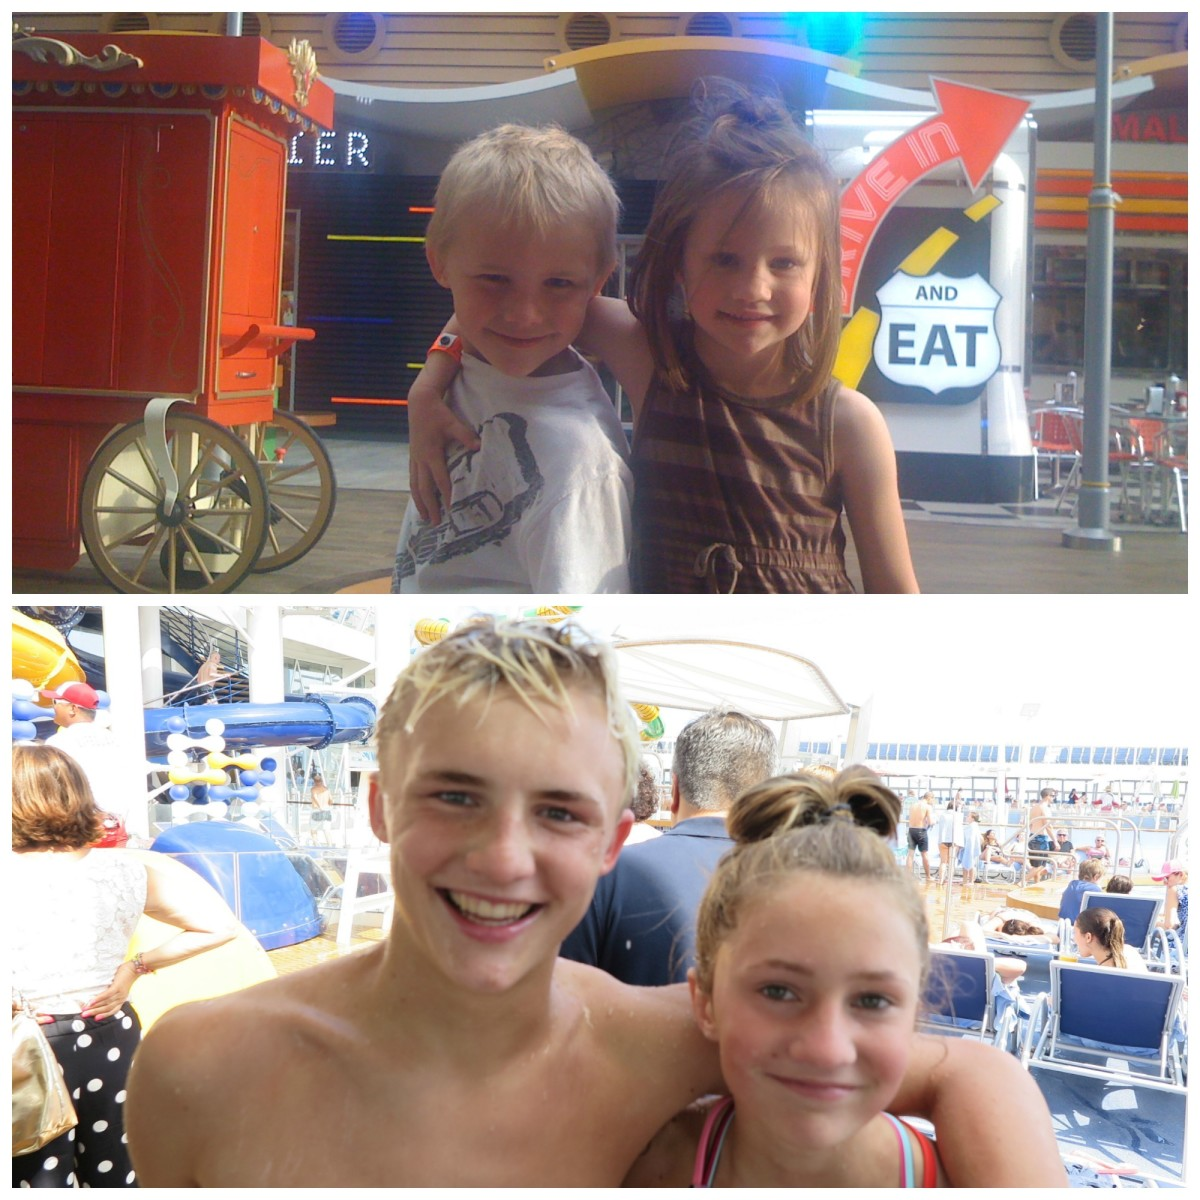 (On the Boardwalk on Oasis of the Seas, 2010 vs. On the Pool Deck of the Symphony of the Seas, 2018)